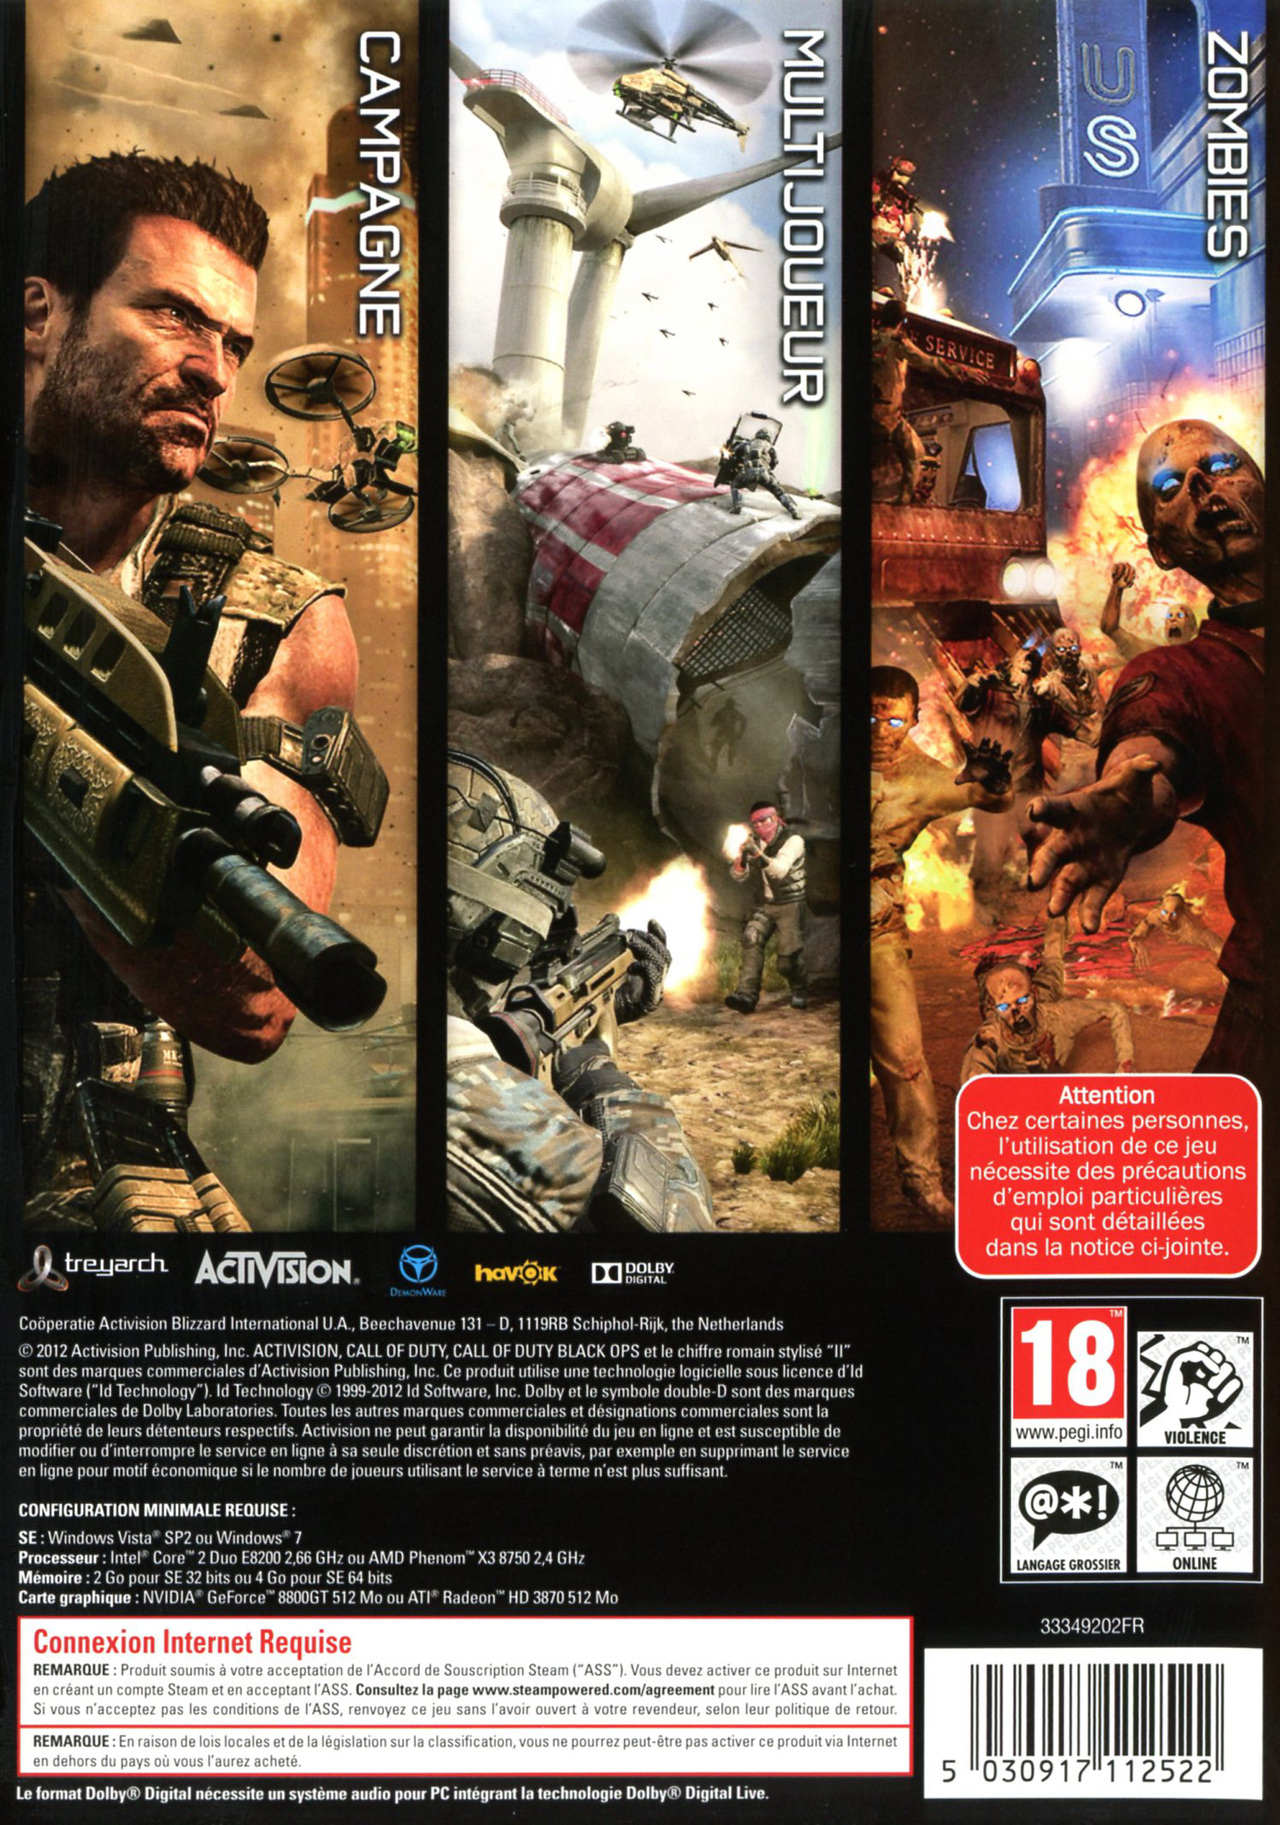 Call of duty; call of duty 2; call of duty 4 black ops 2 call of duty crack as some games call back to report the